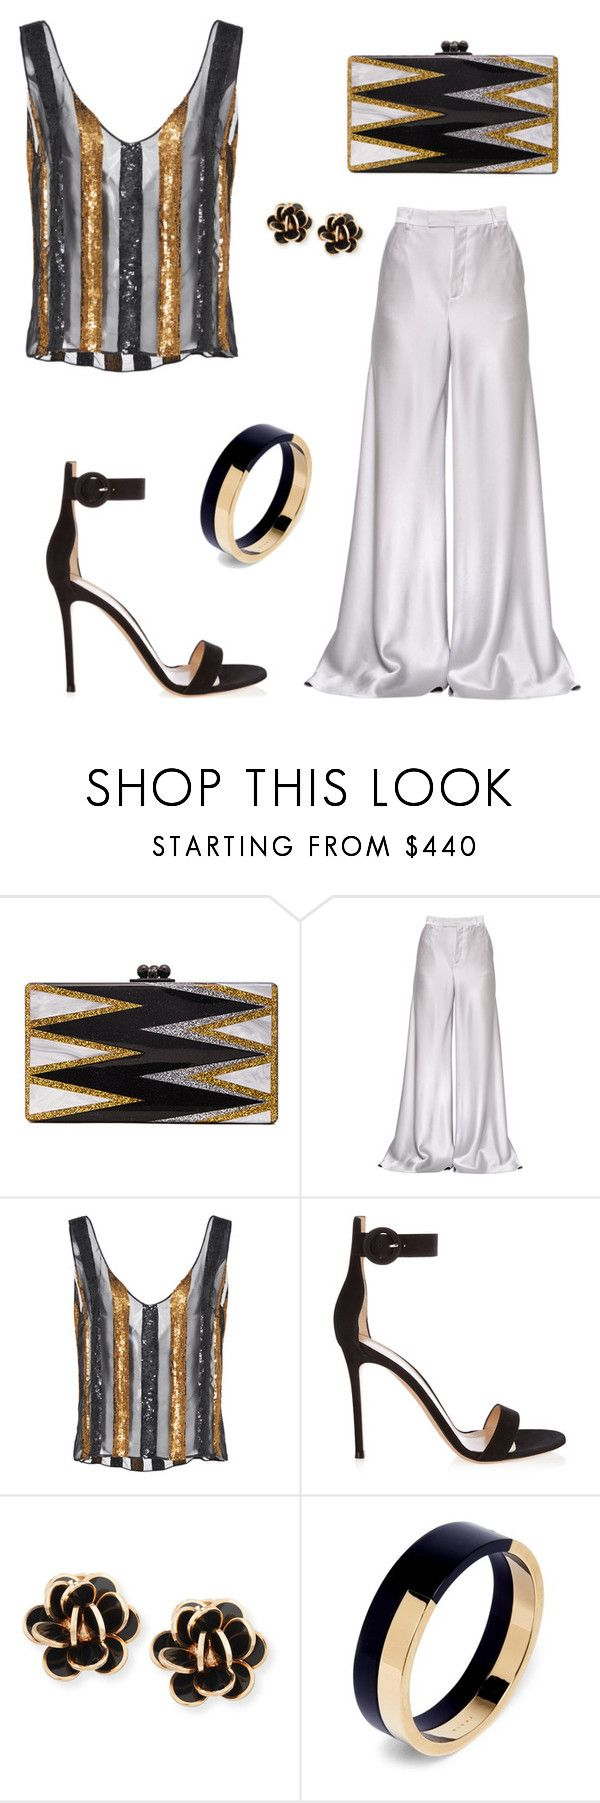 """Untitled #766"" by style75 ❤ liked on Polyvore featuring Edie Parker, Etro, Sally Lapointe, Gianvito Rossi, Chantecler and Marni"